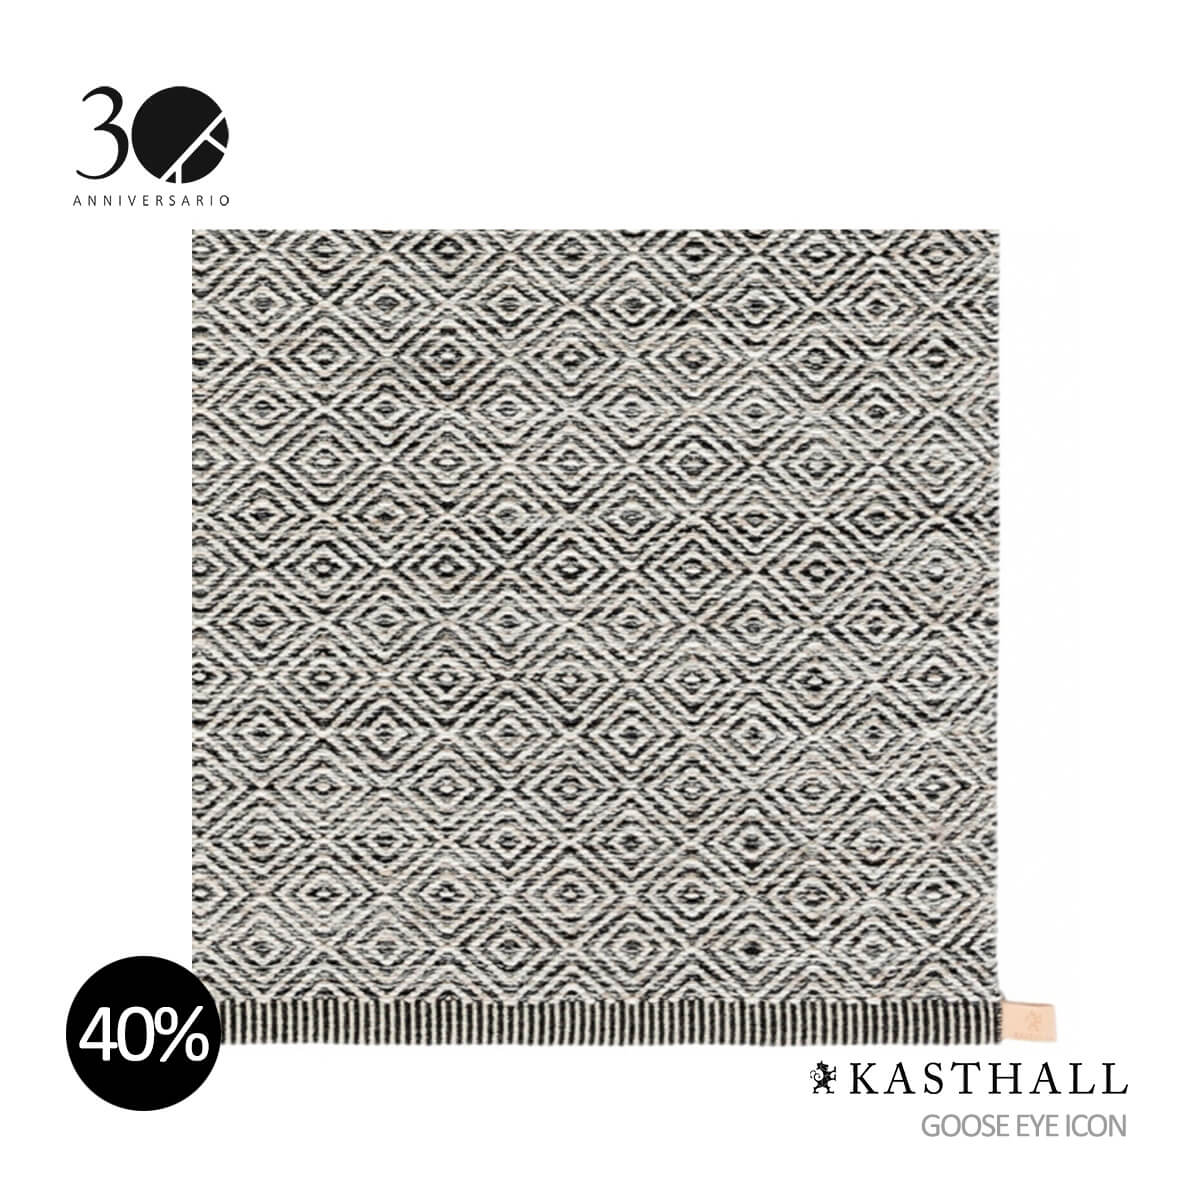 KASTHALL-GOOSE-EYE-ICON